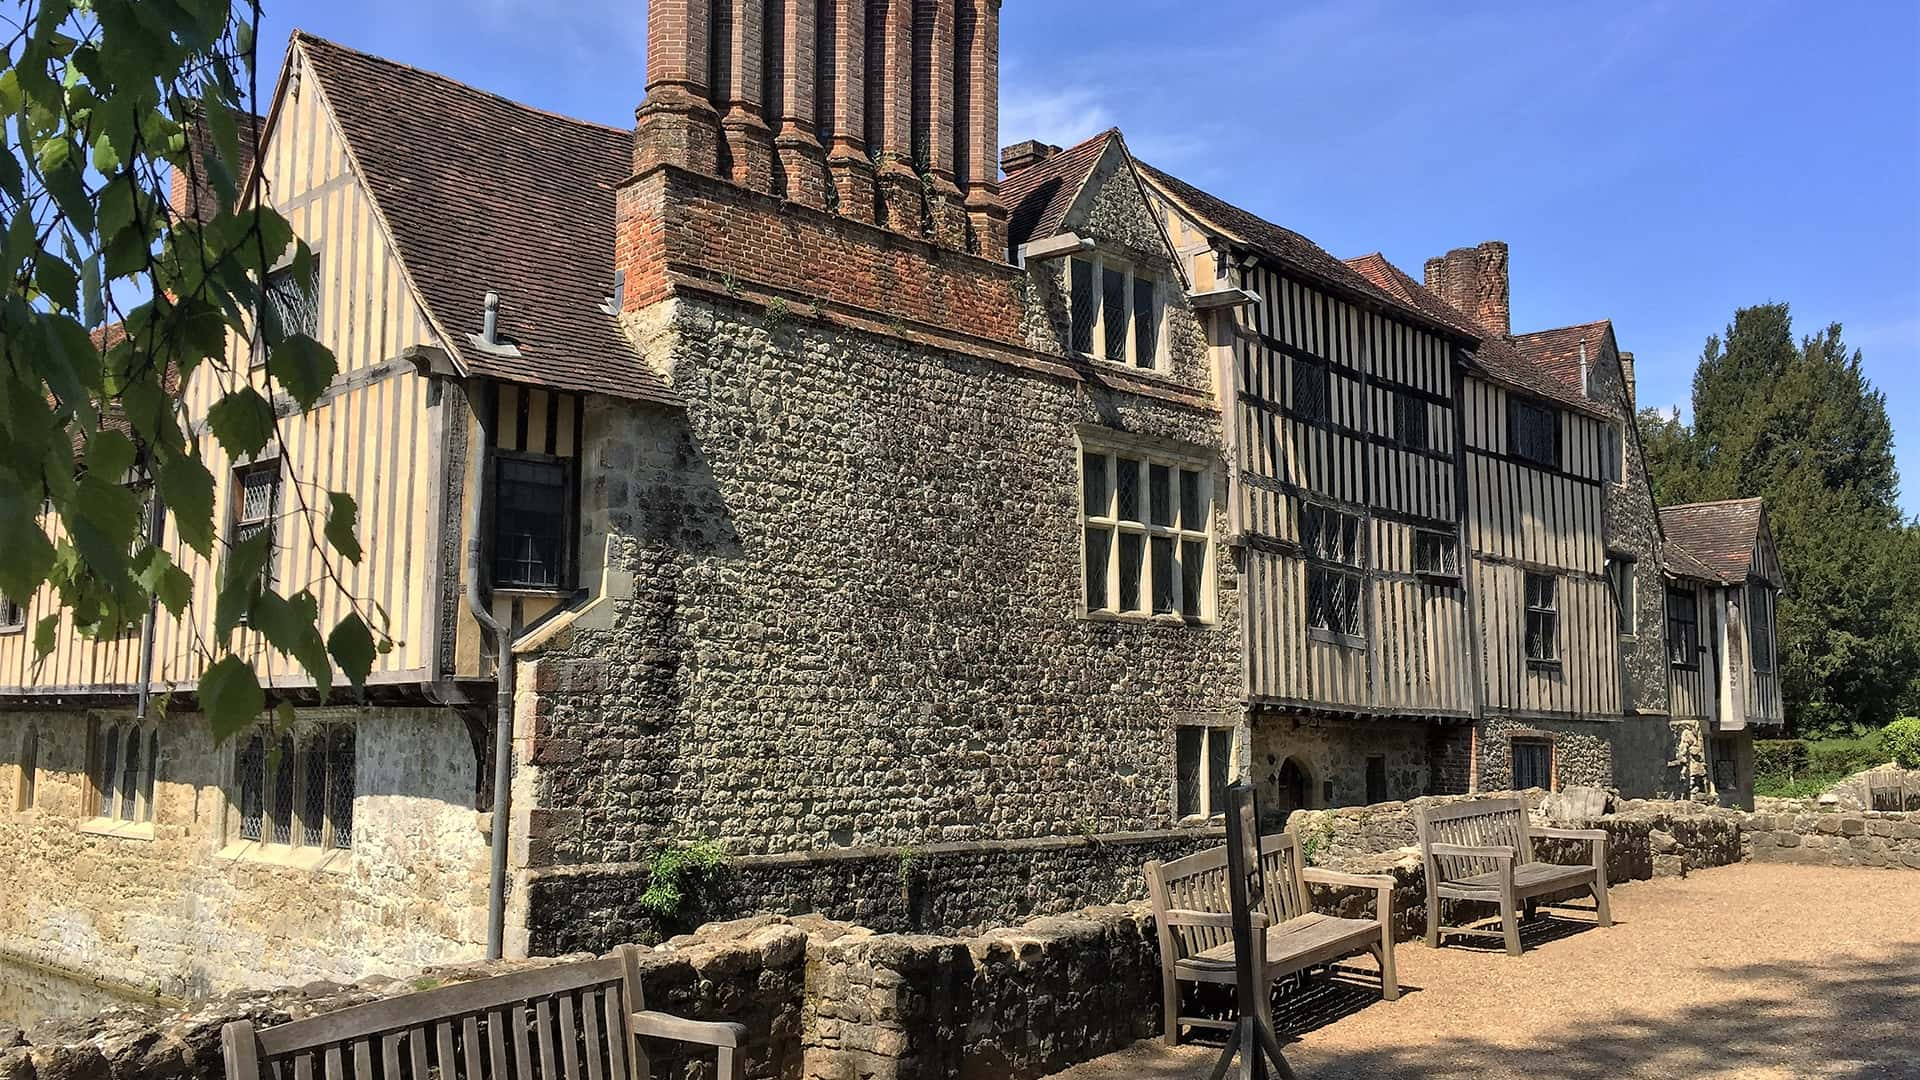 Ightham Mote's Medieval English Architecture